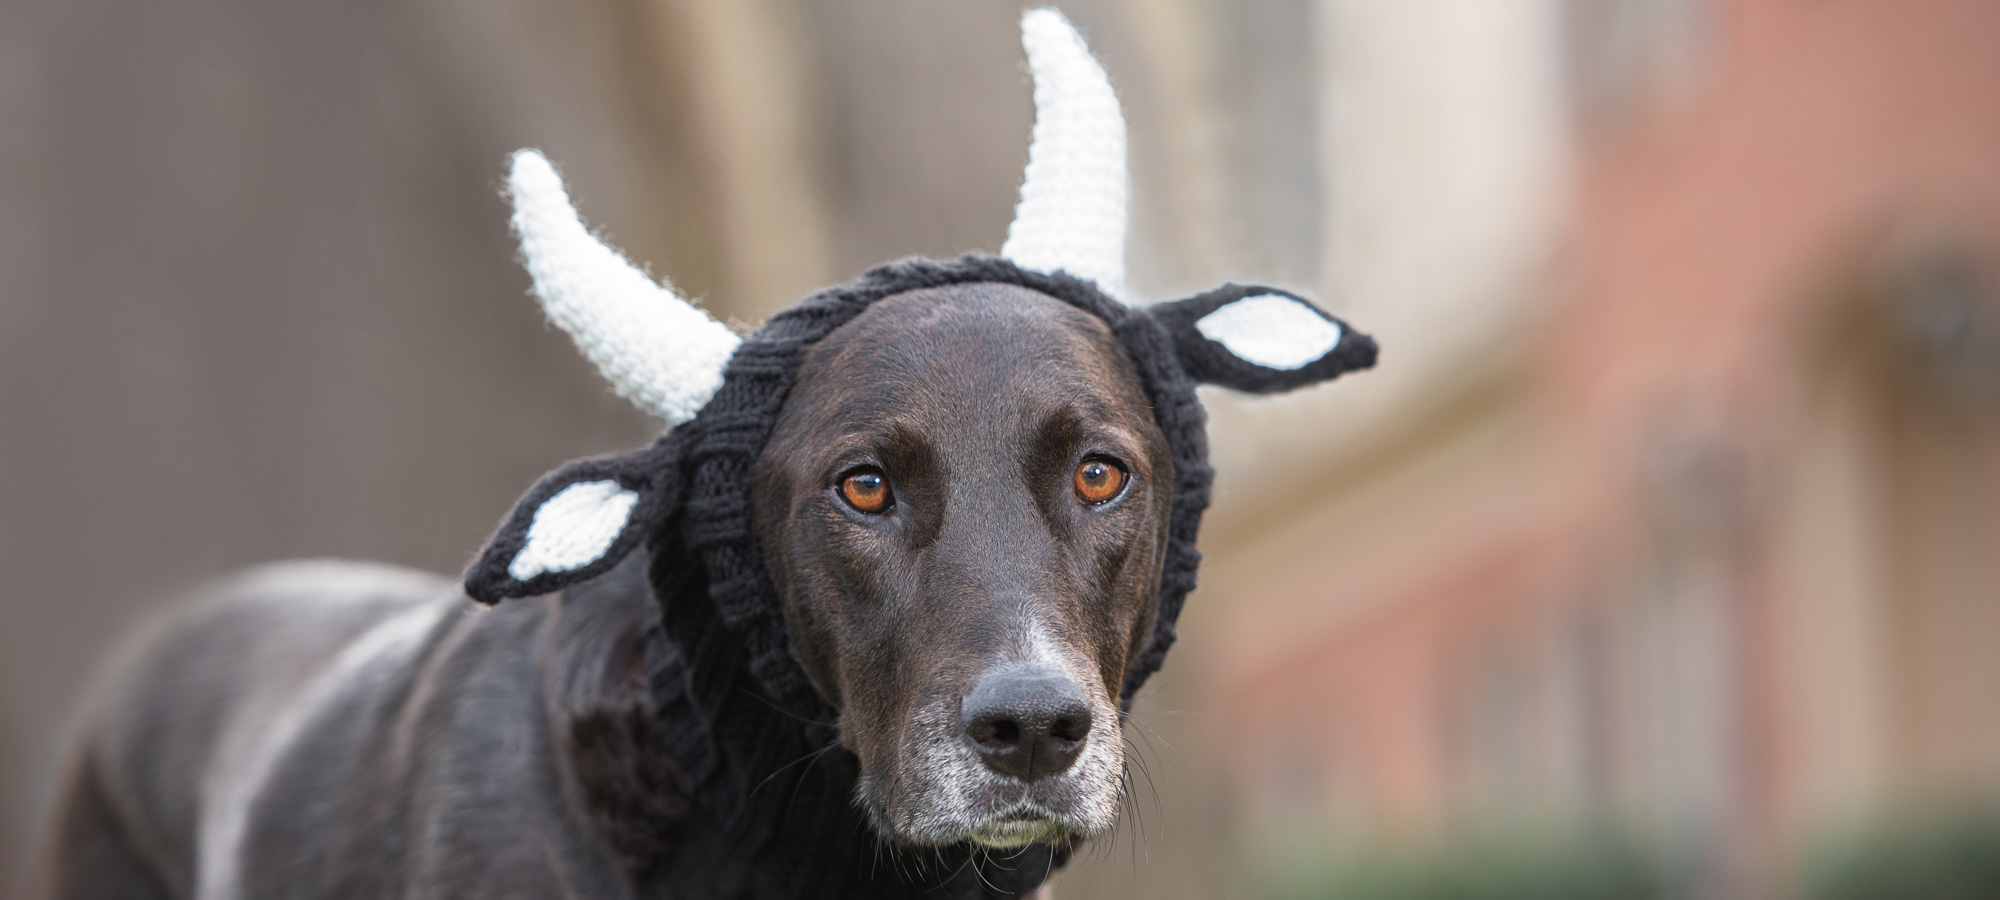 Did you just enter a fantasy? Is this a bull or a dog?